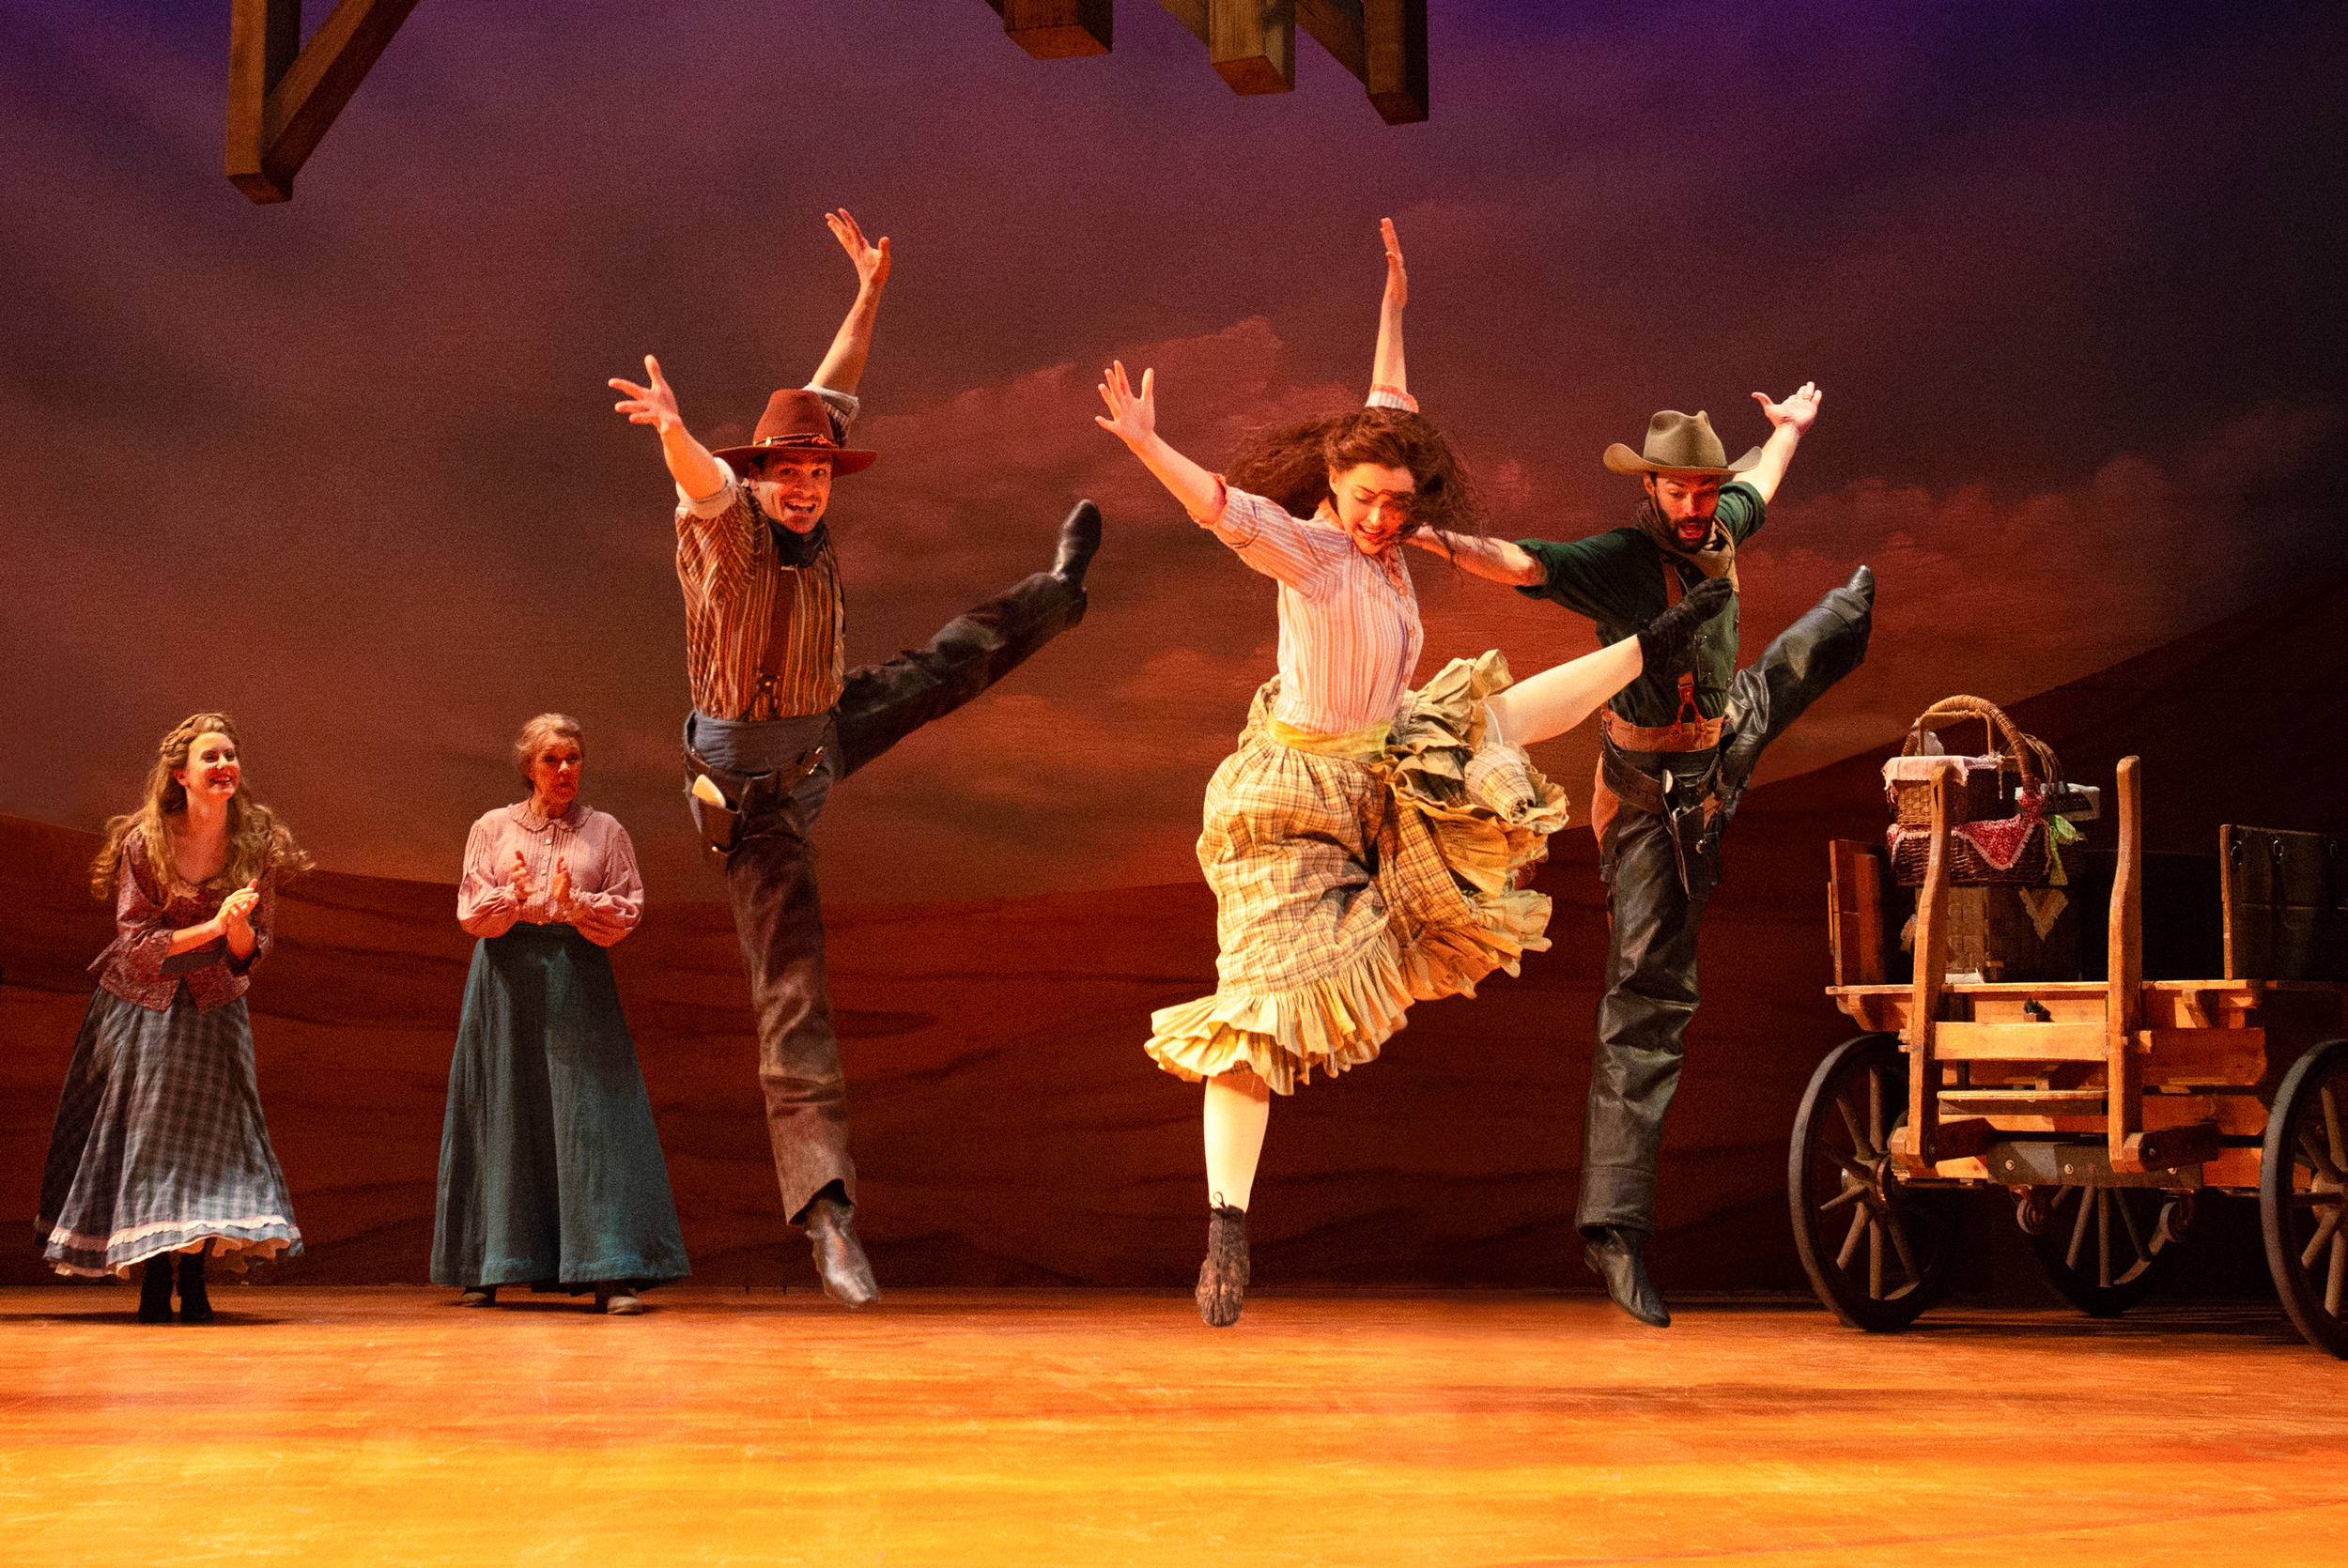 Emilia Brown, Susann Fletcher, Brian Martin, Vanessa Mitchell, and Jon Cooper in the 2018 production of  Oklahoma!  - Photo by Gary Ng